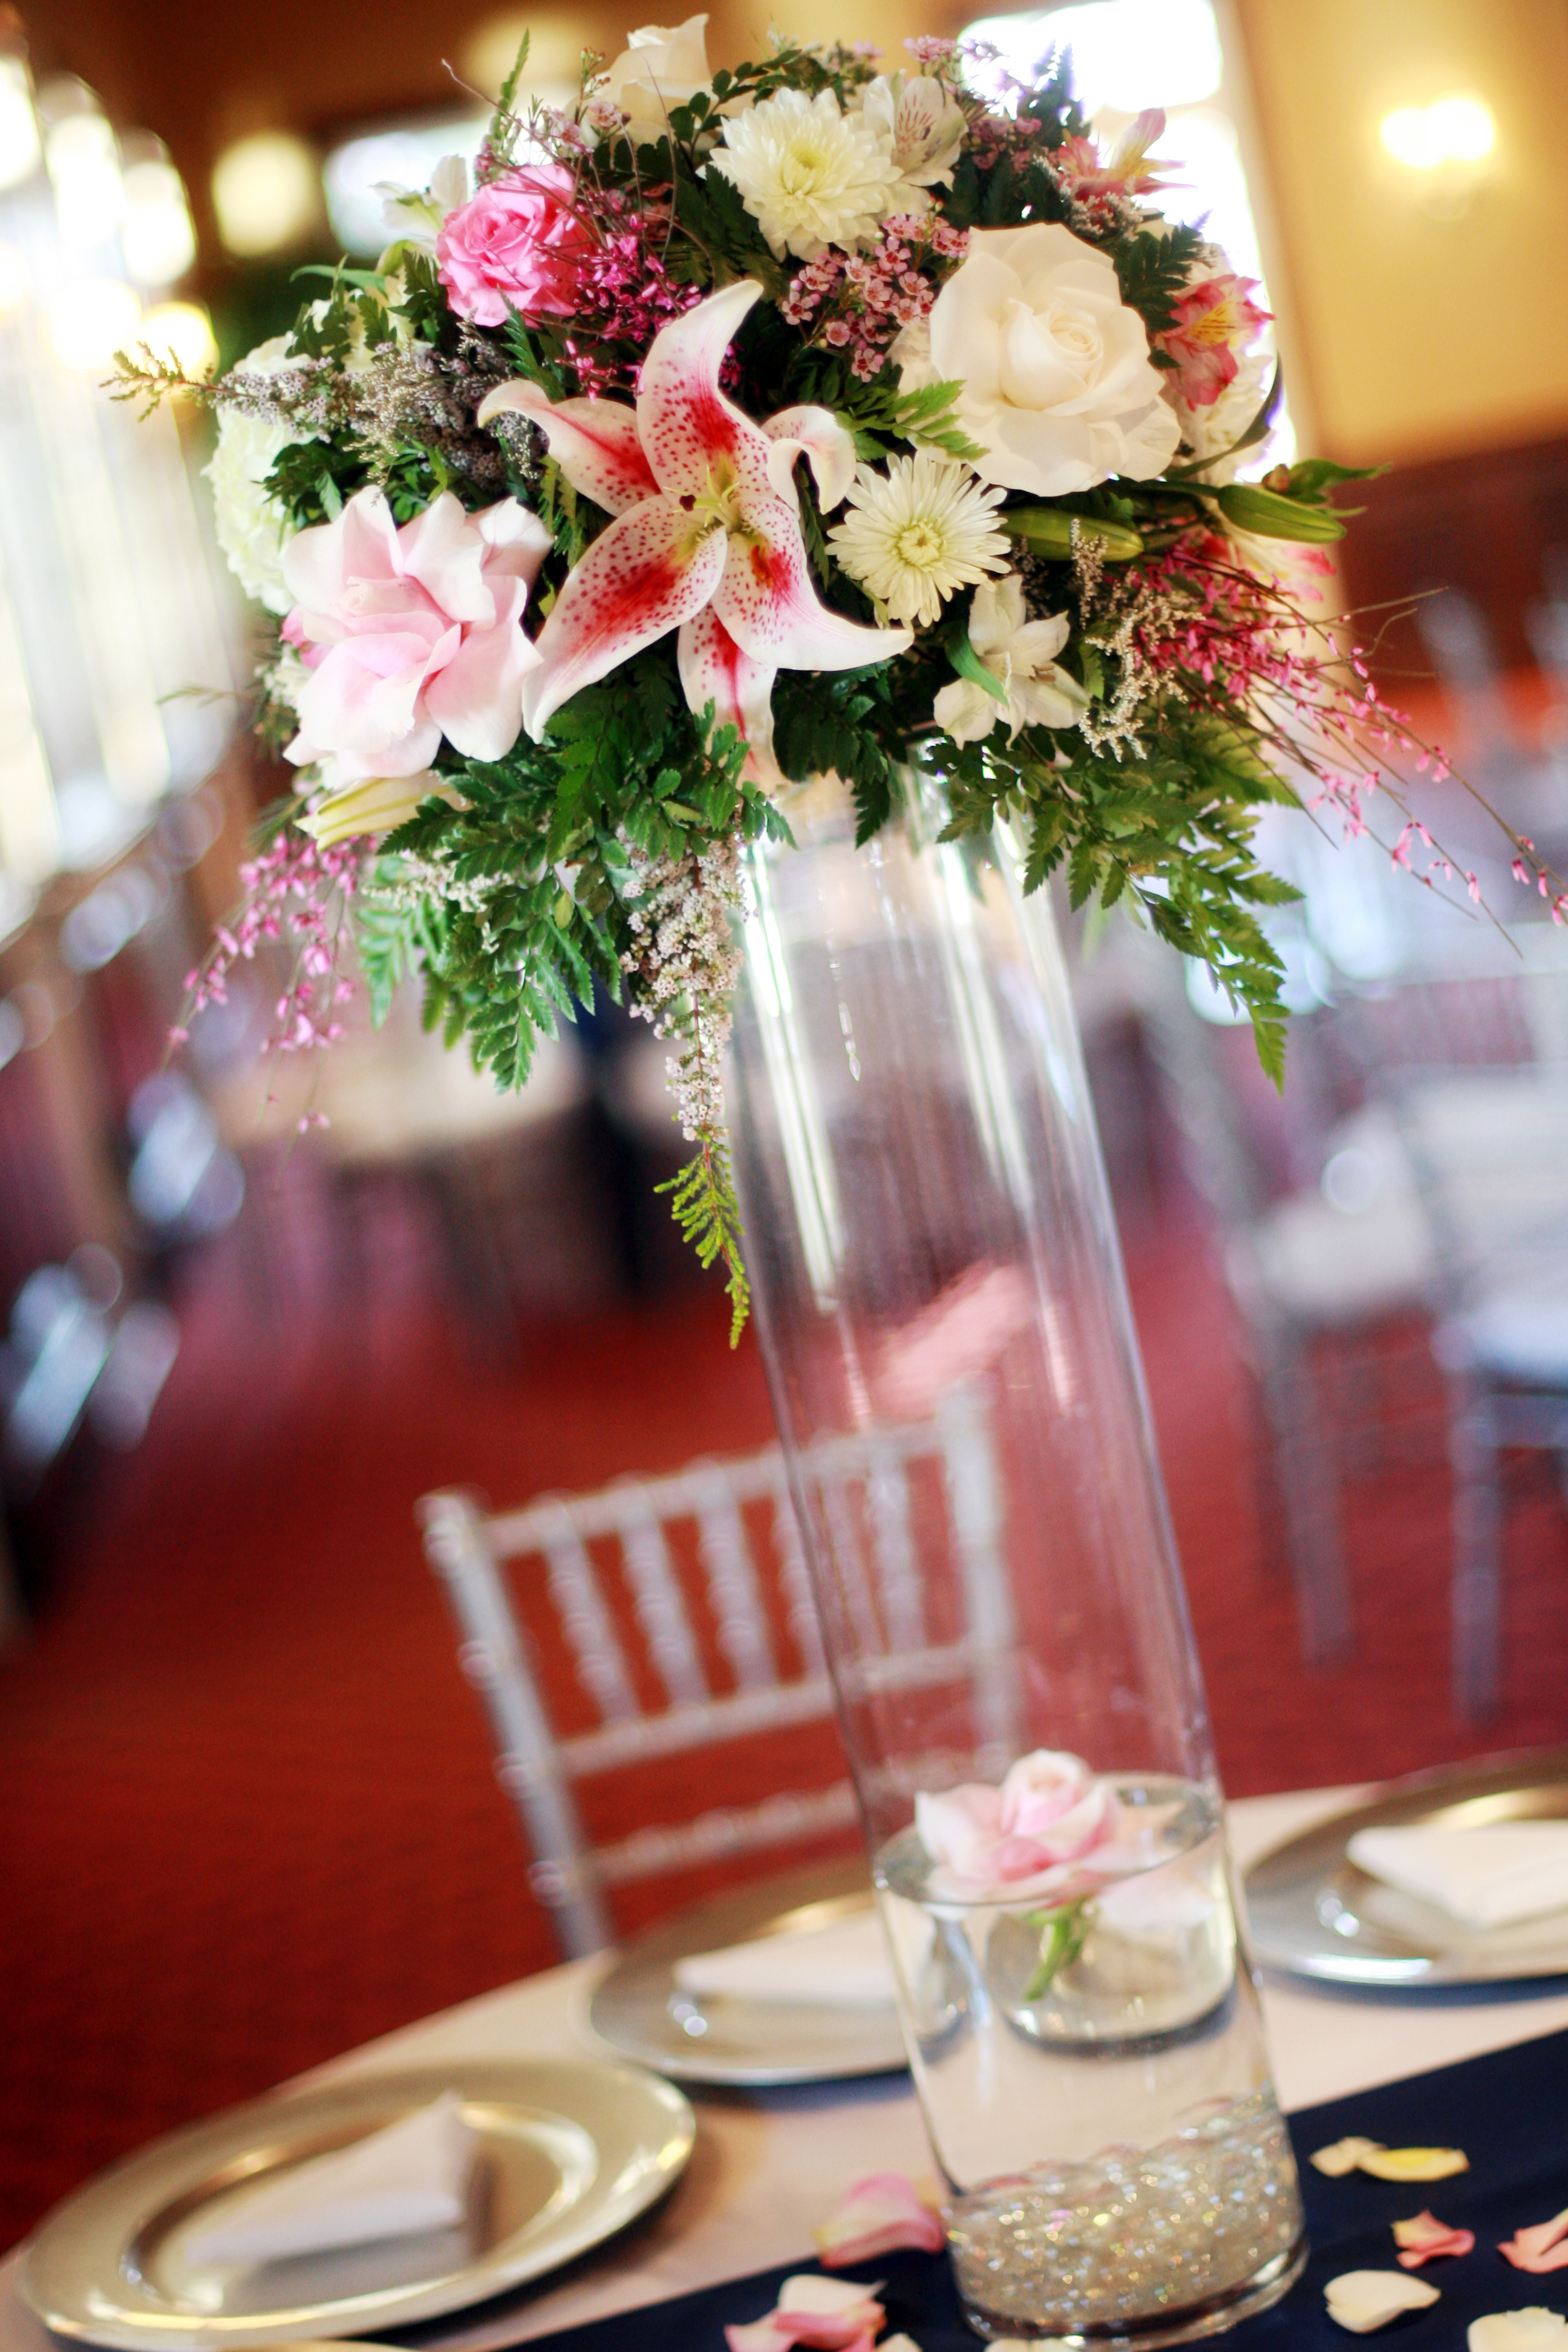 Reception, Flowers & Decor, white, pink, blue, silver, Centerpieces, Flowers, Centerpiece, Table, Water, Lily, Floating, Chargers, Setting, Stargazer, Navy